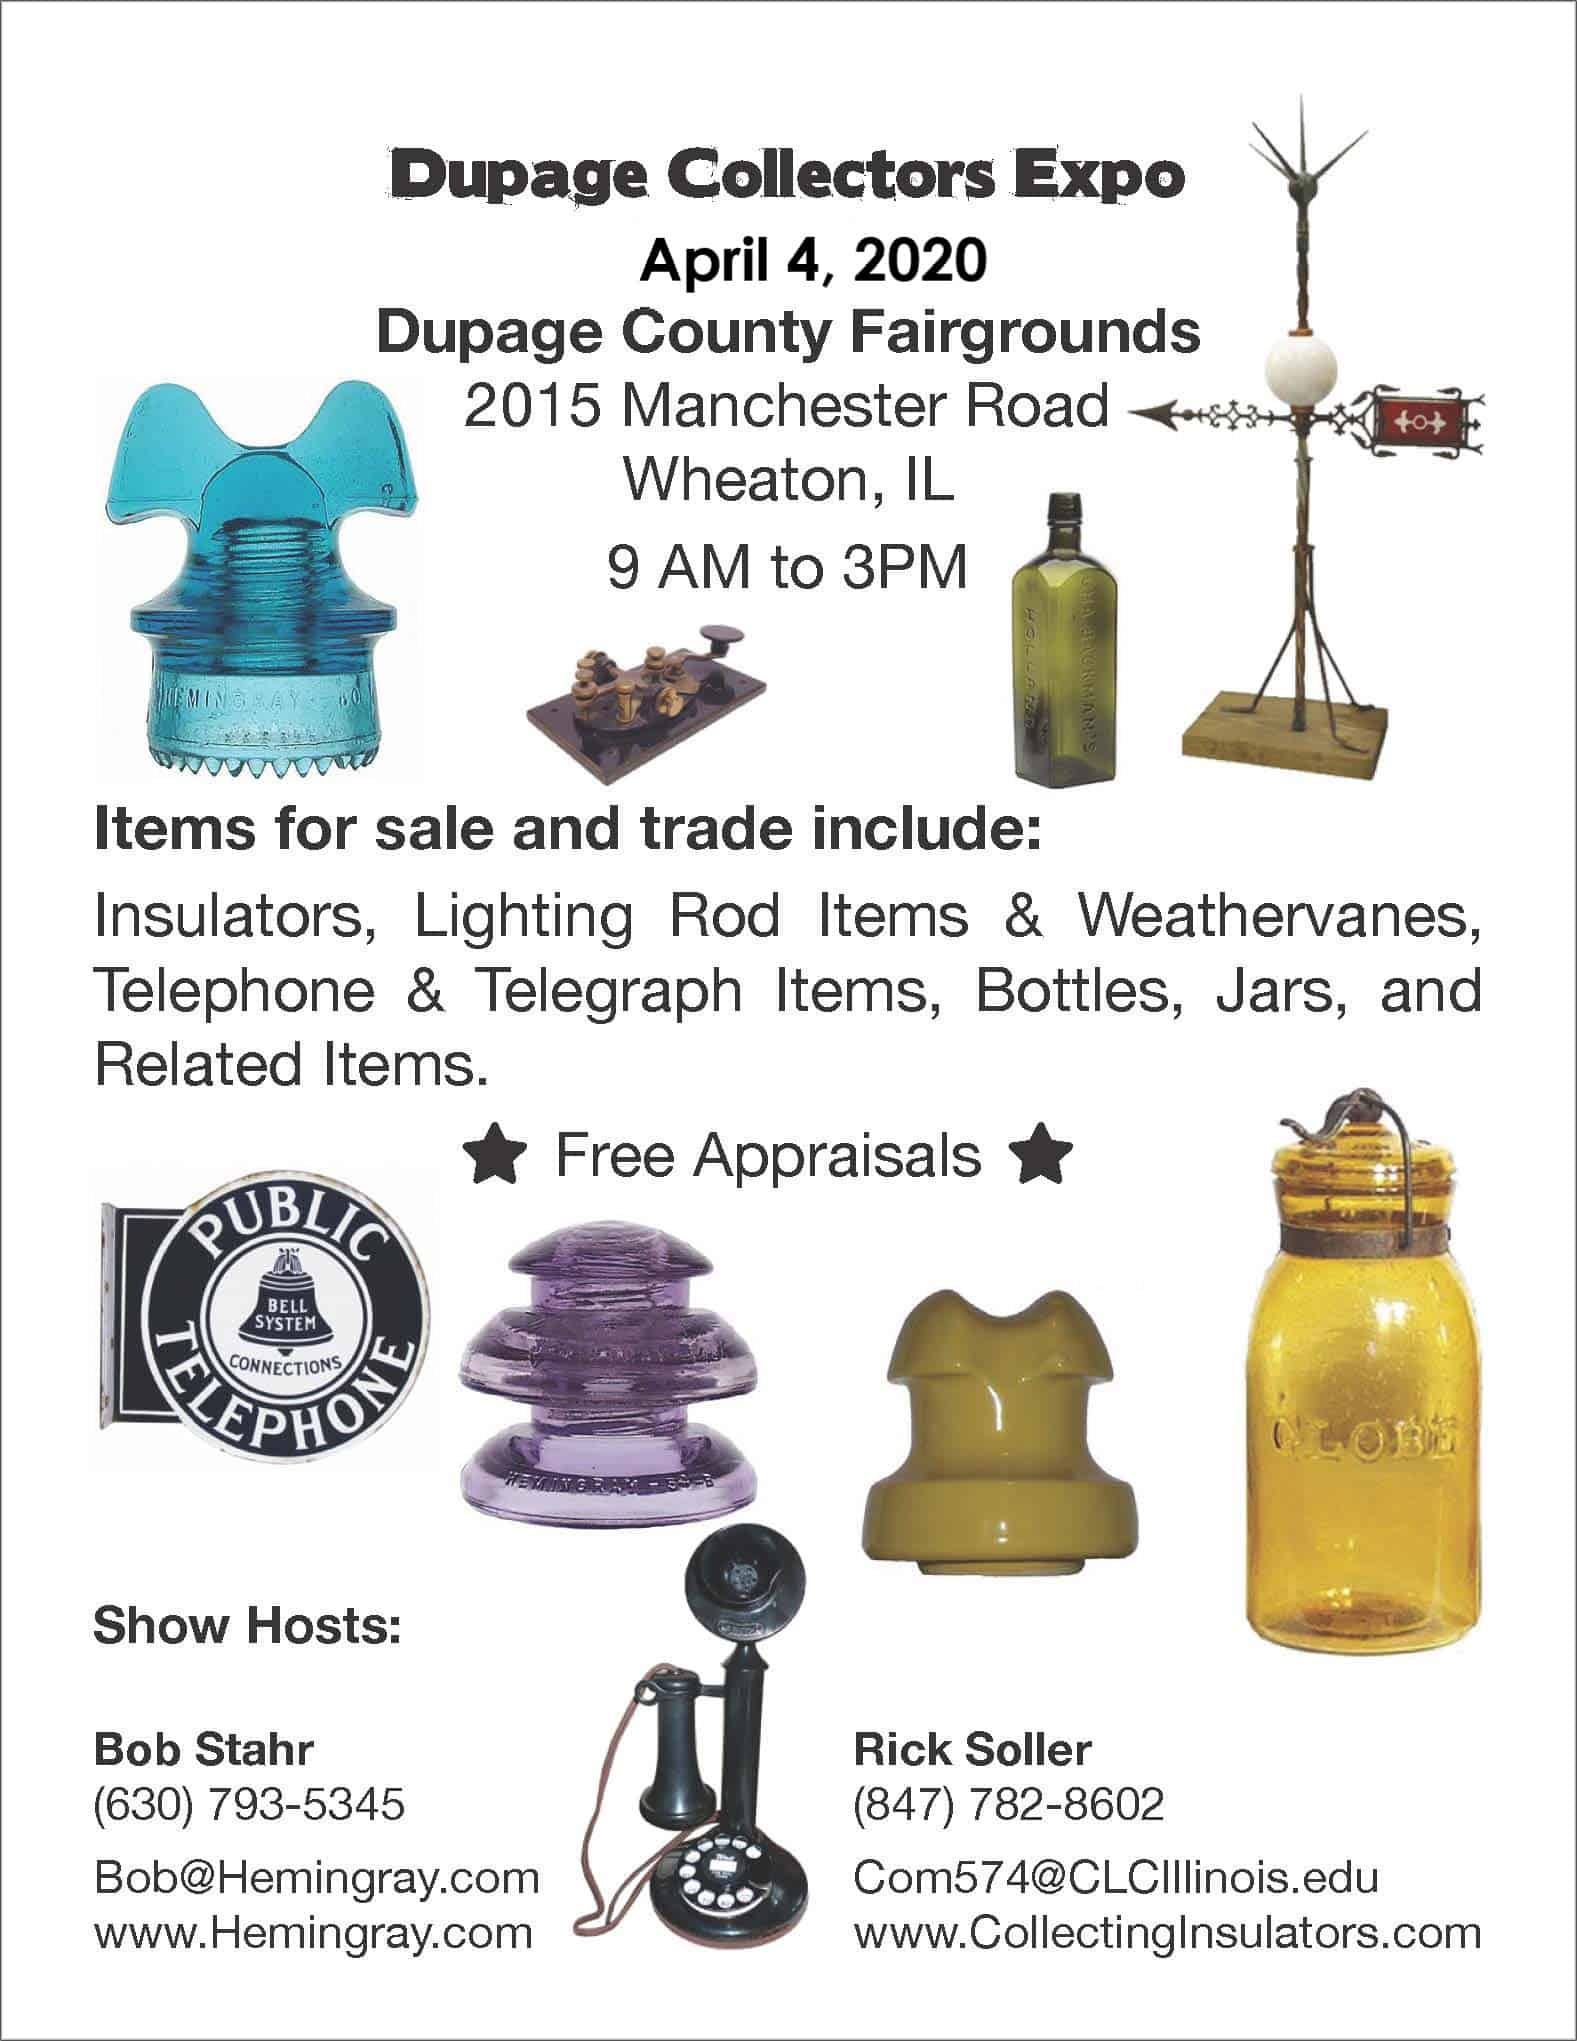 Dupage Collectors Expo featuring insulators, lighting rod items, bottles, jars, and related items @ Dupage County Fairgrounds